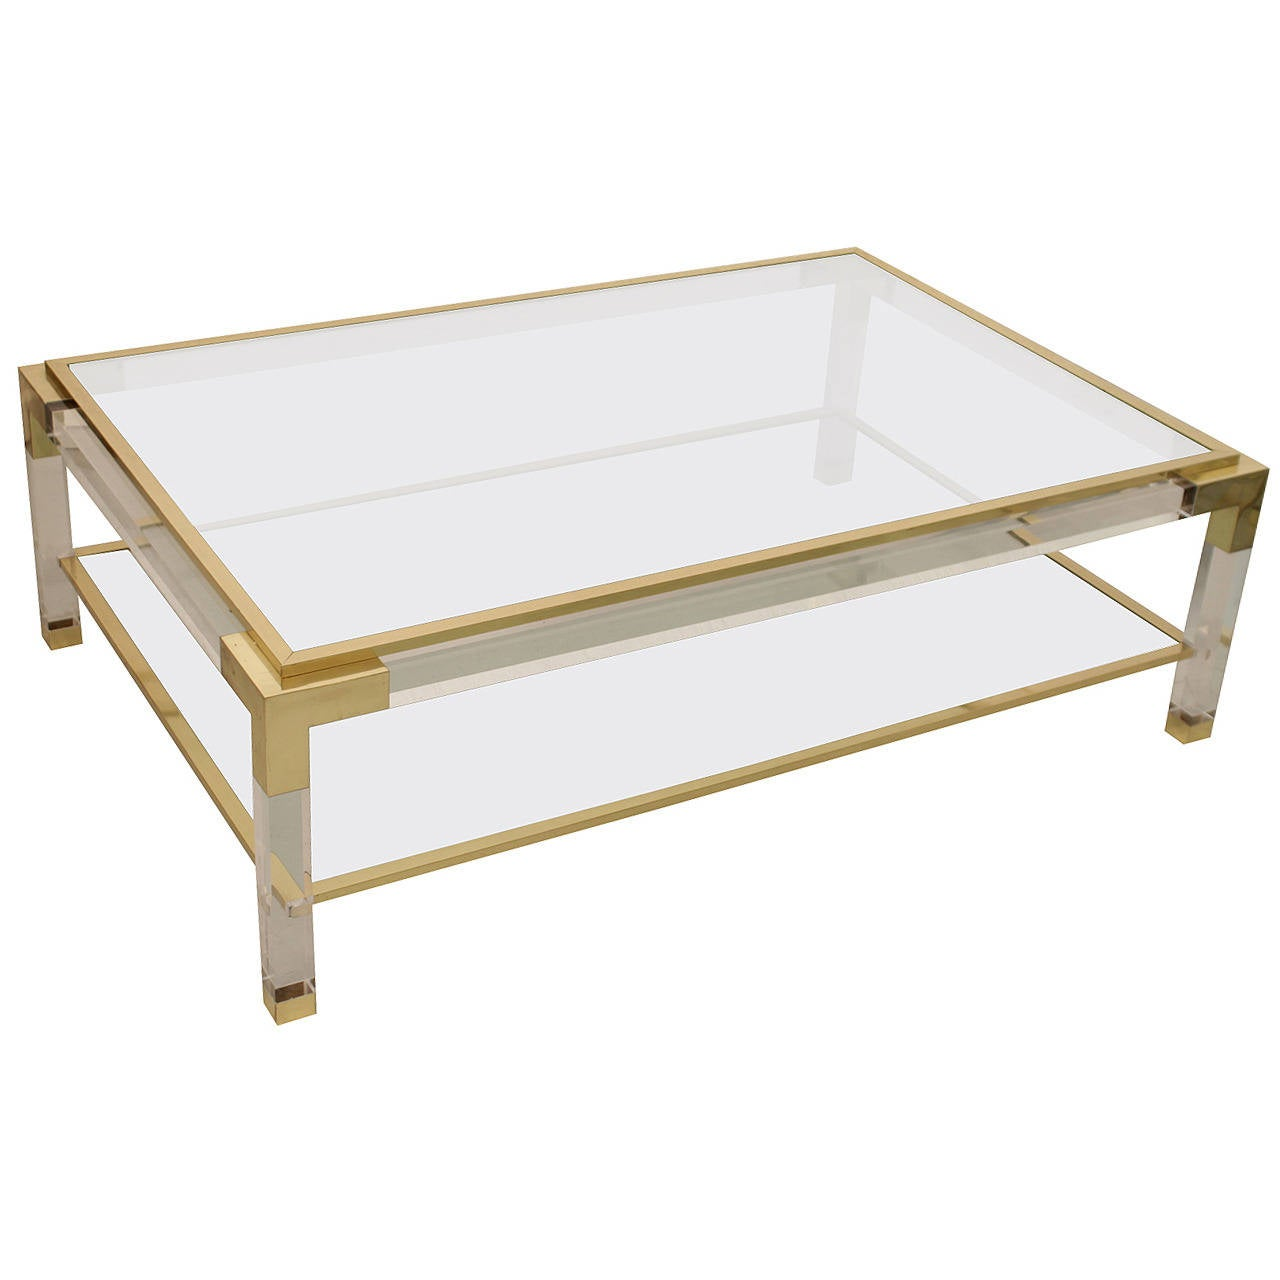 Vintage Brass Lucite And Glass Coffee Table At 1stdibs